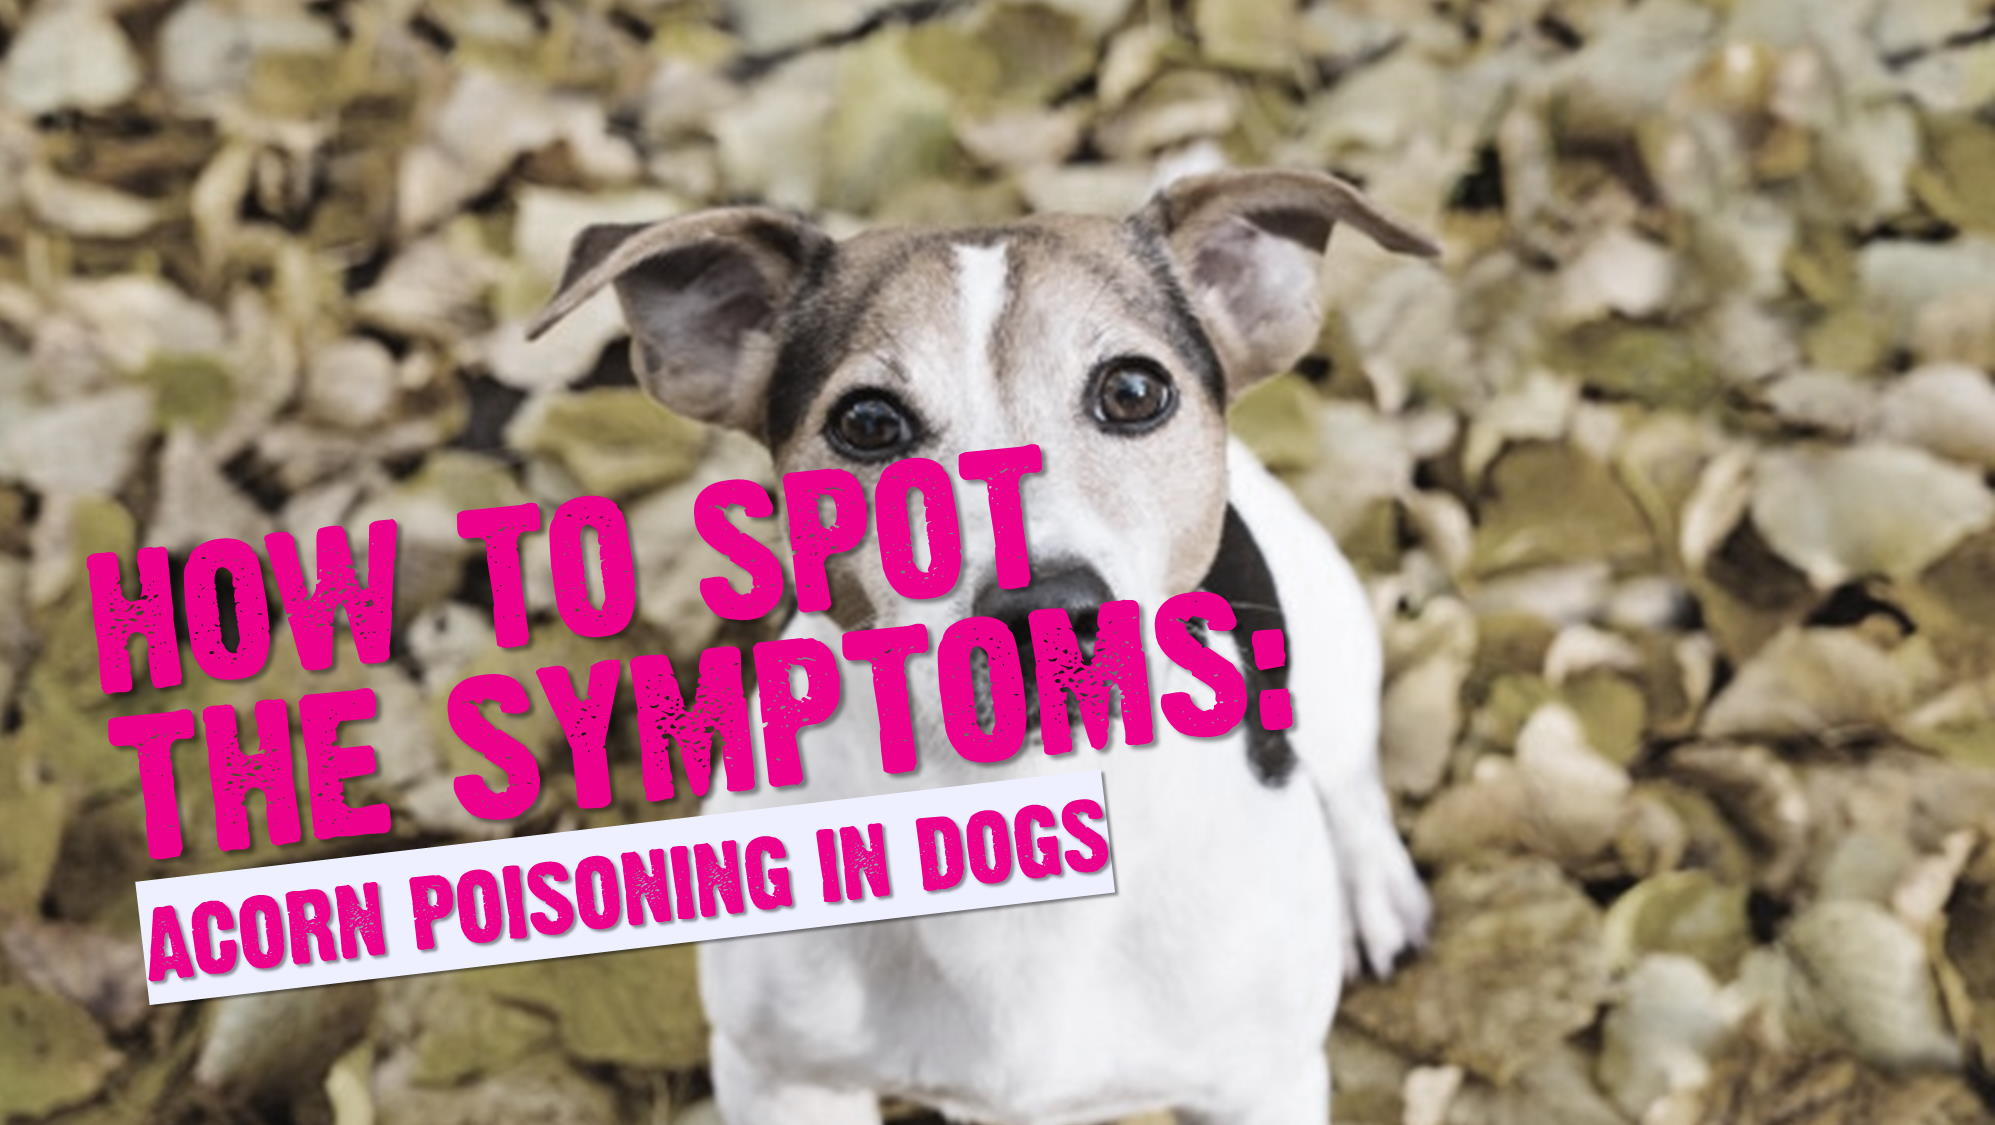 Acorns & Dogs (Symptoms of Acorn Poisoning in Dogs)